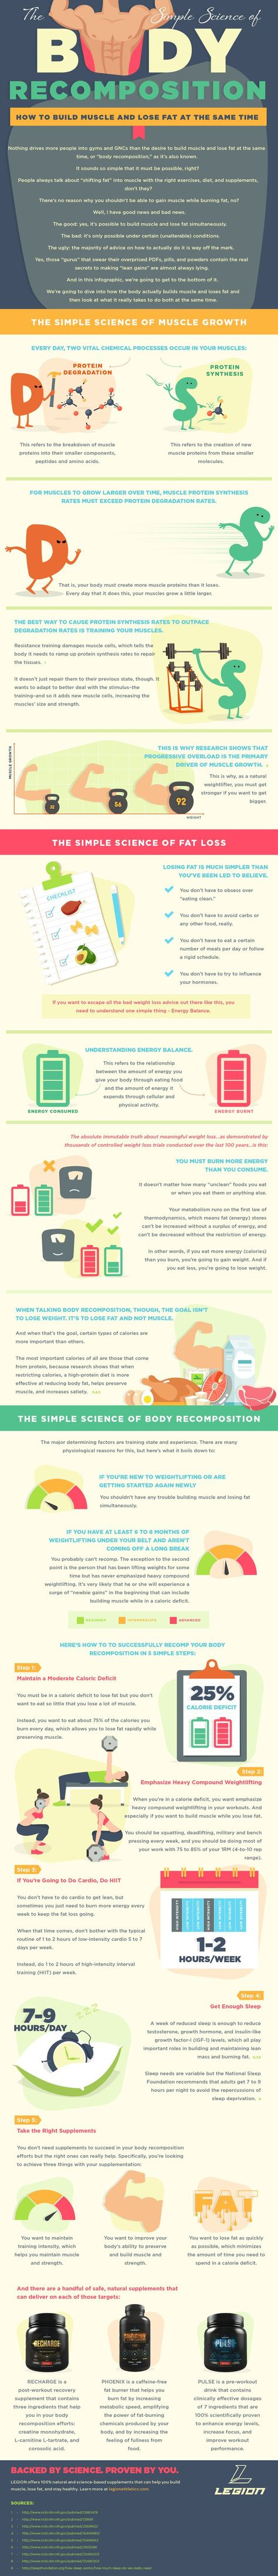 [Infographic] The Secret to Body Recomposition: Lose Fat & Gain Muscle - Legion Athletics